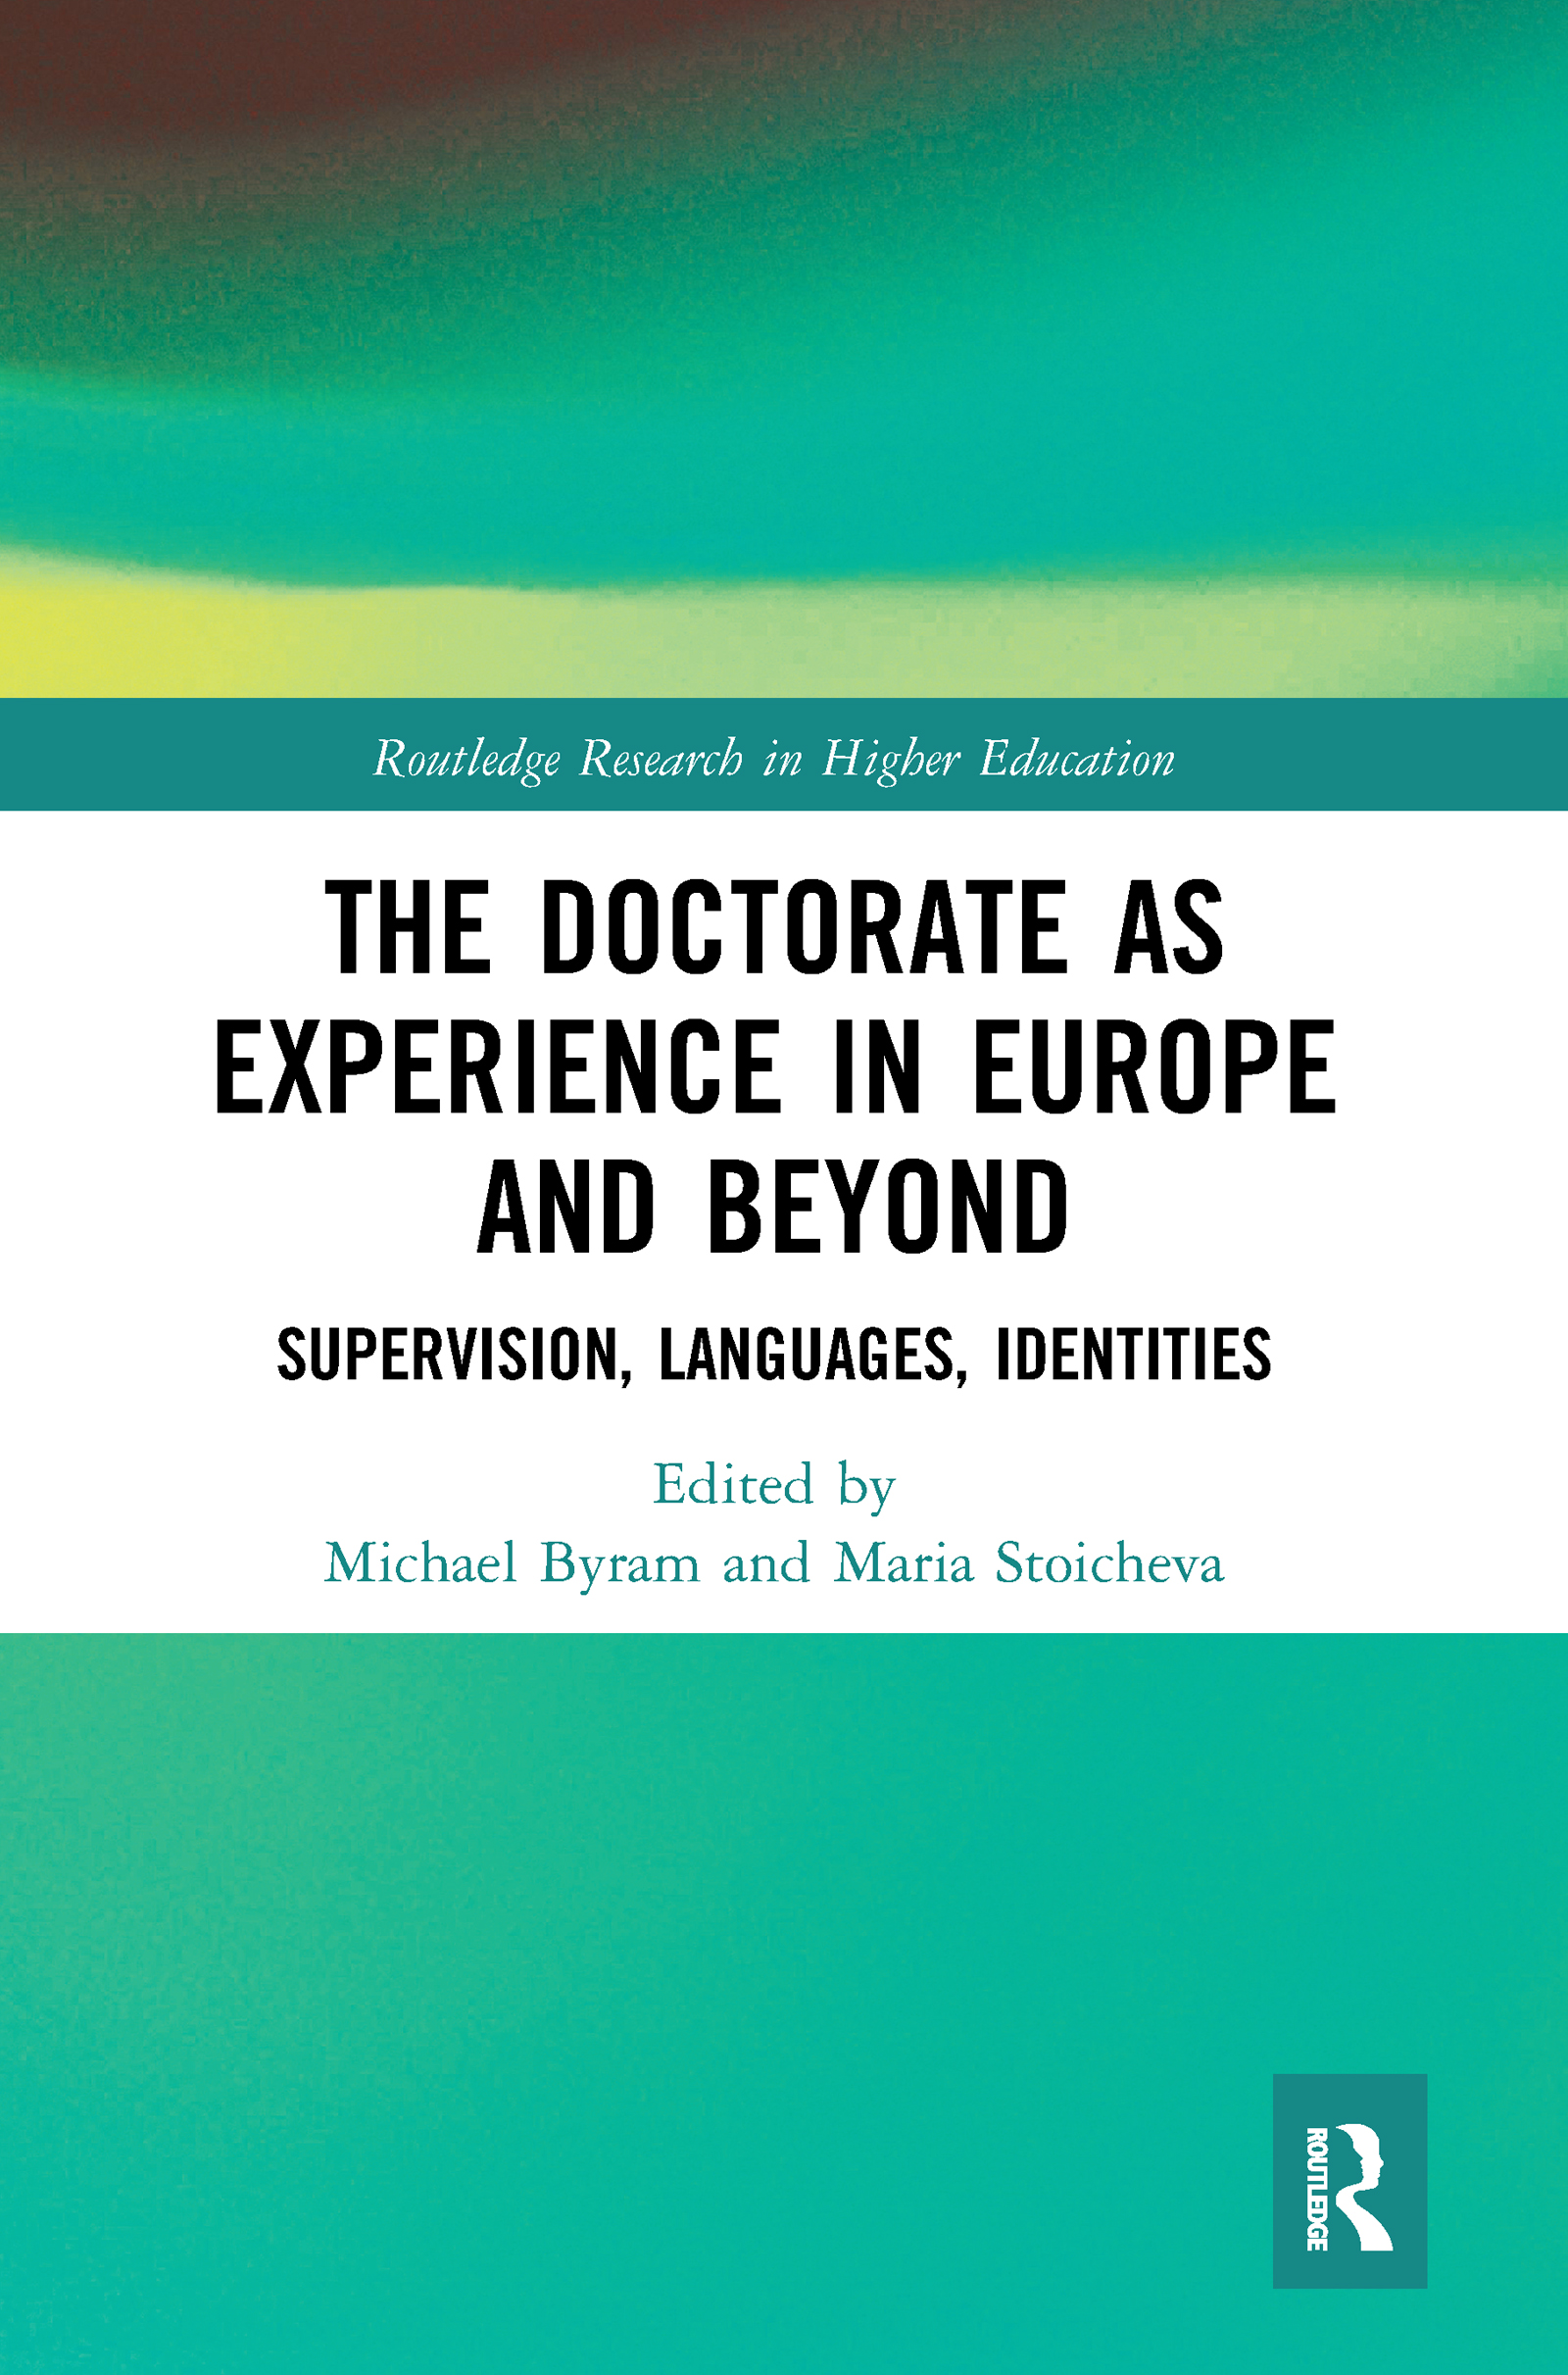 The Doctorate as Experience in Europe and Beyond